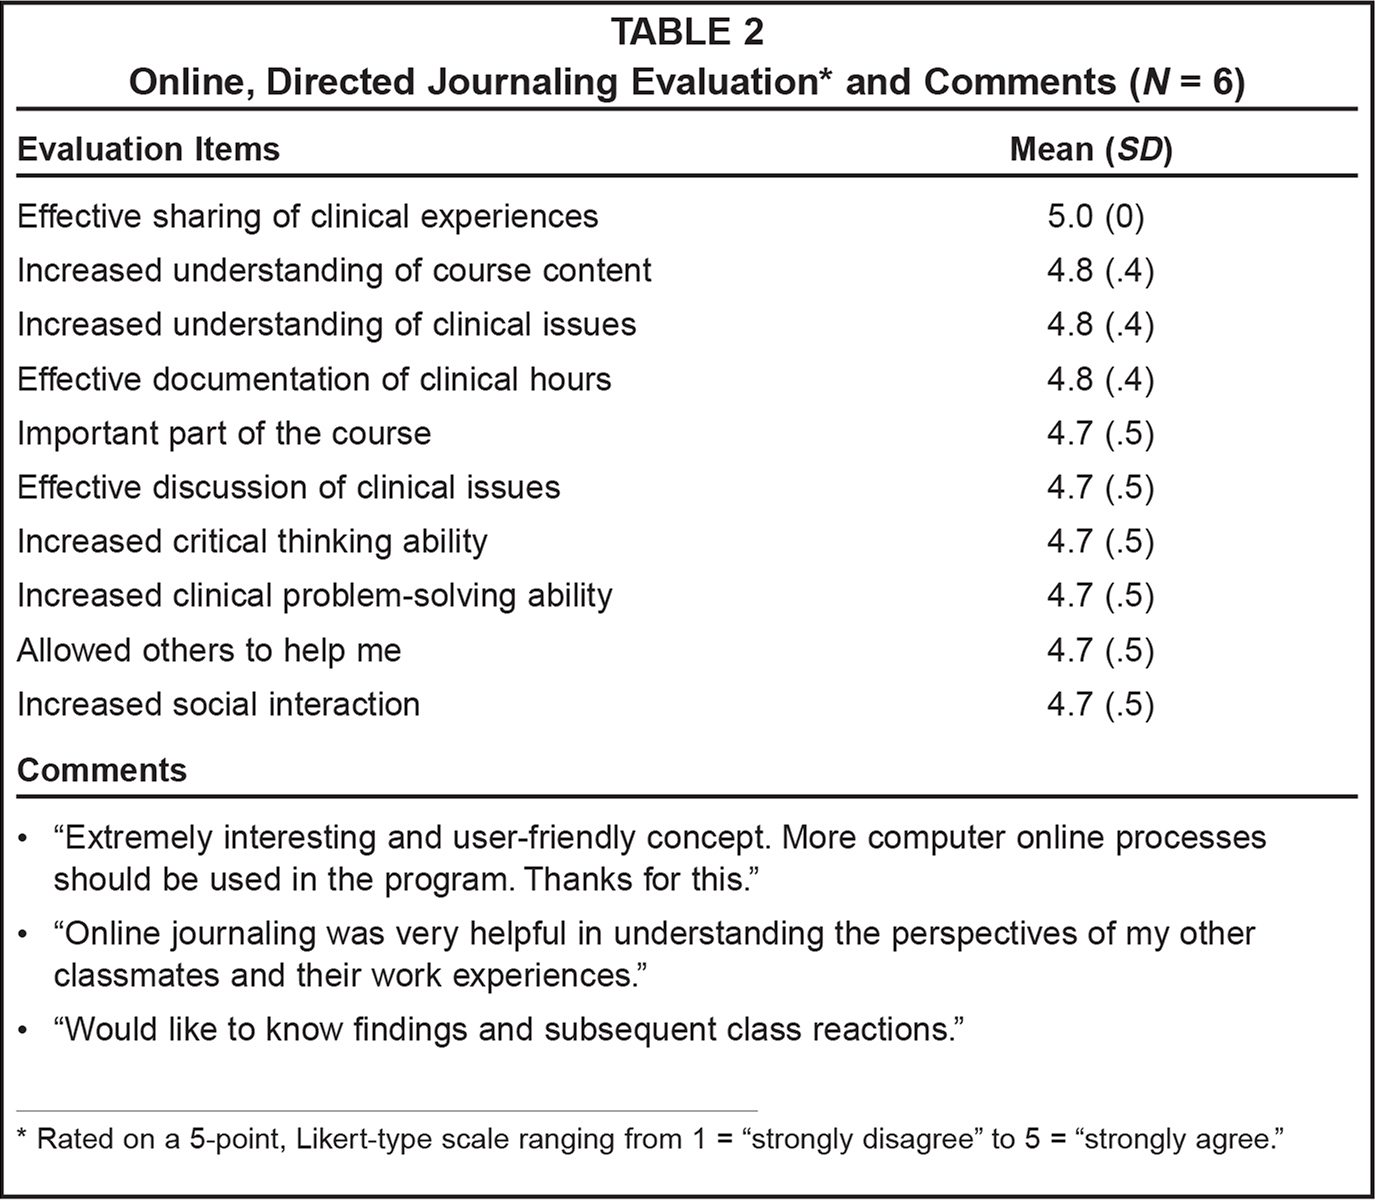 Online, Directed Journaling Evaluation* and Comments (N = 6)